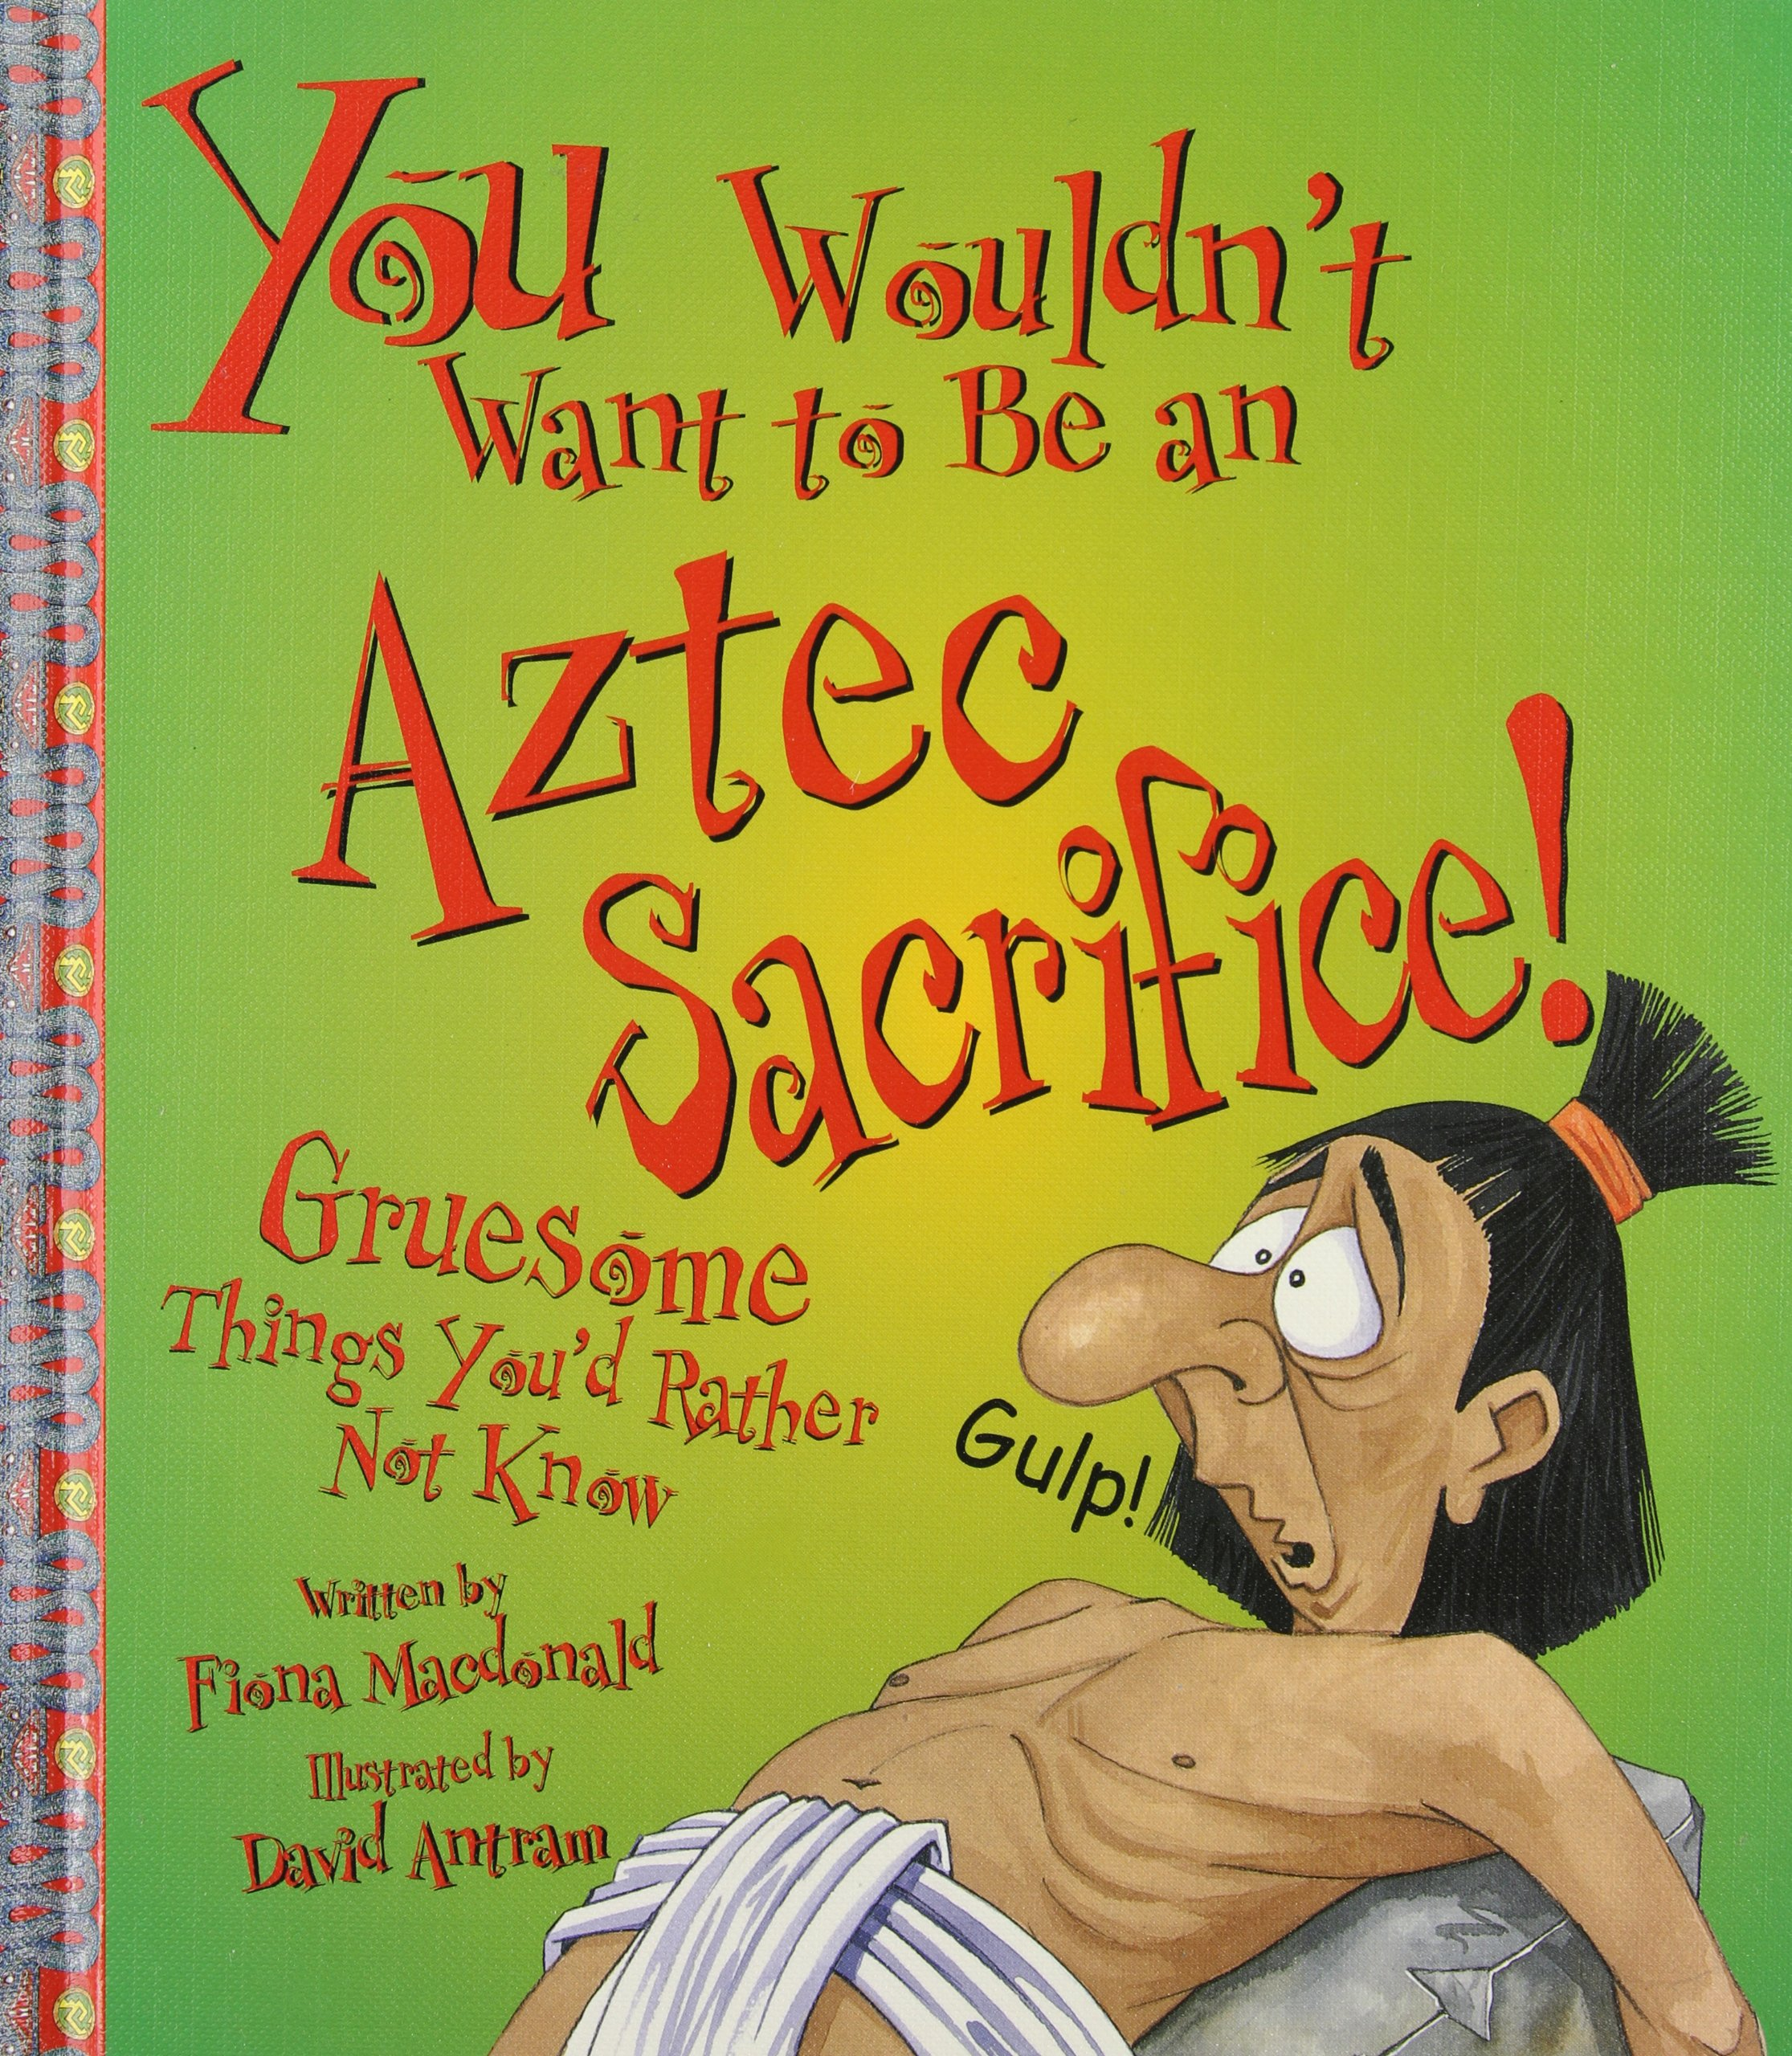 You Wouldn't Want to Be an Aztec Sacrifice: Gruesome Things You'd Rather Not Know